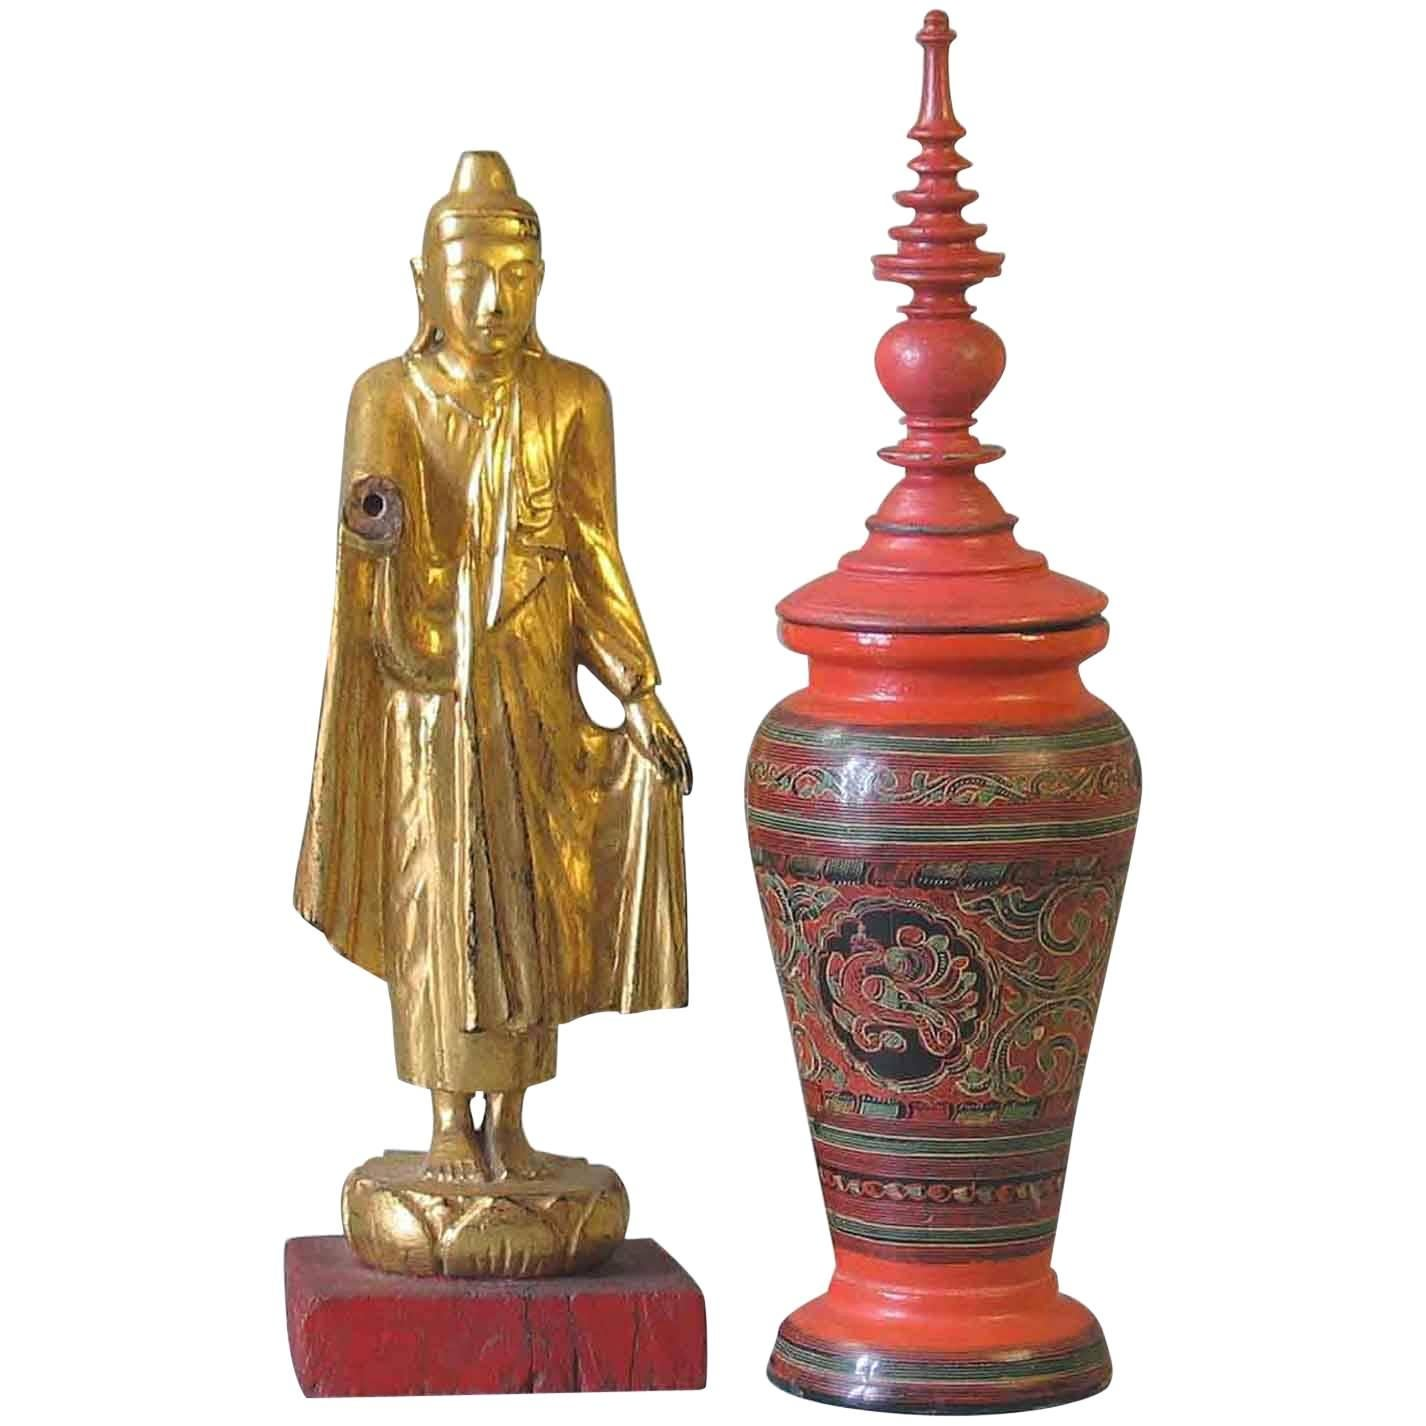 Burmese Mandalay Style Gilt Lacquered Buddha & Red Lacquer Covered Baluster Vase